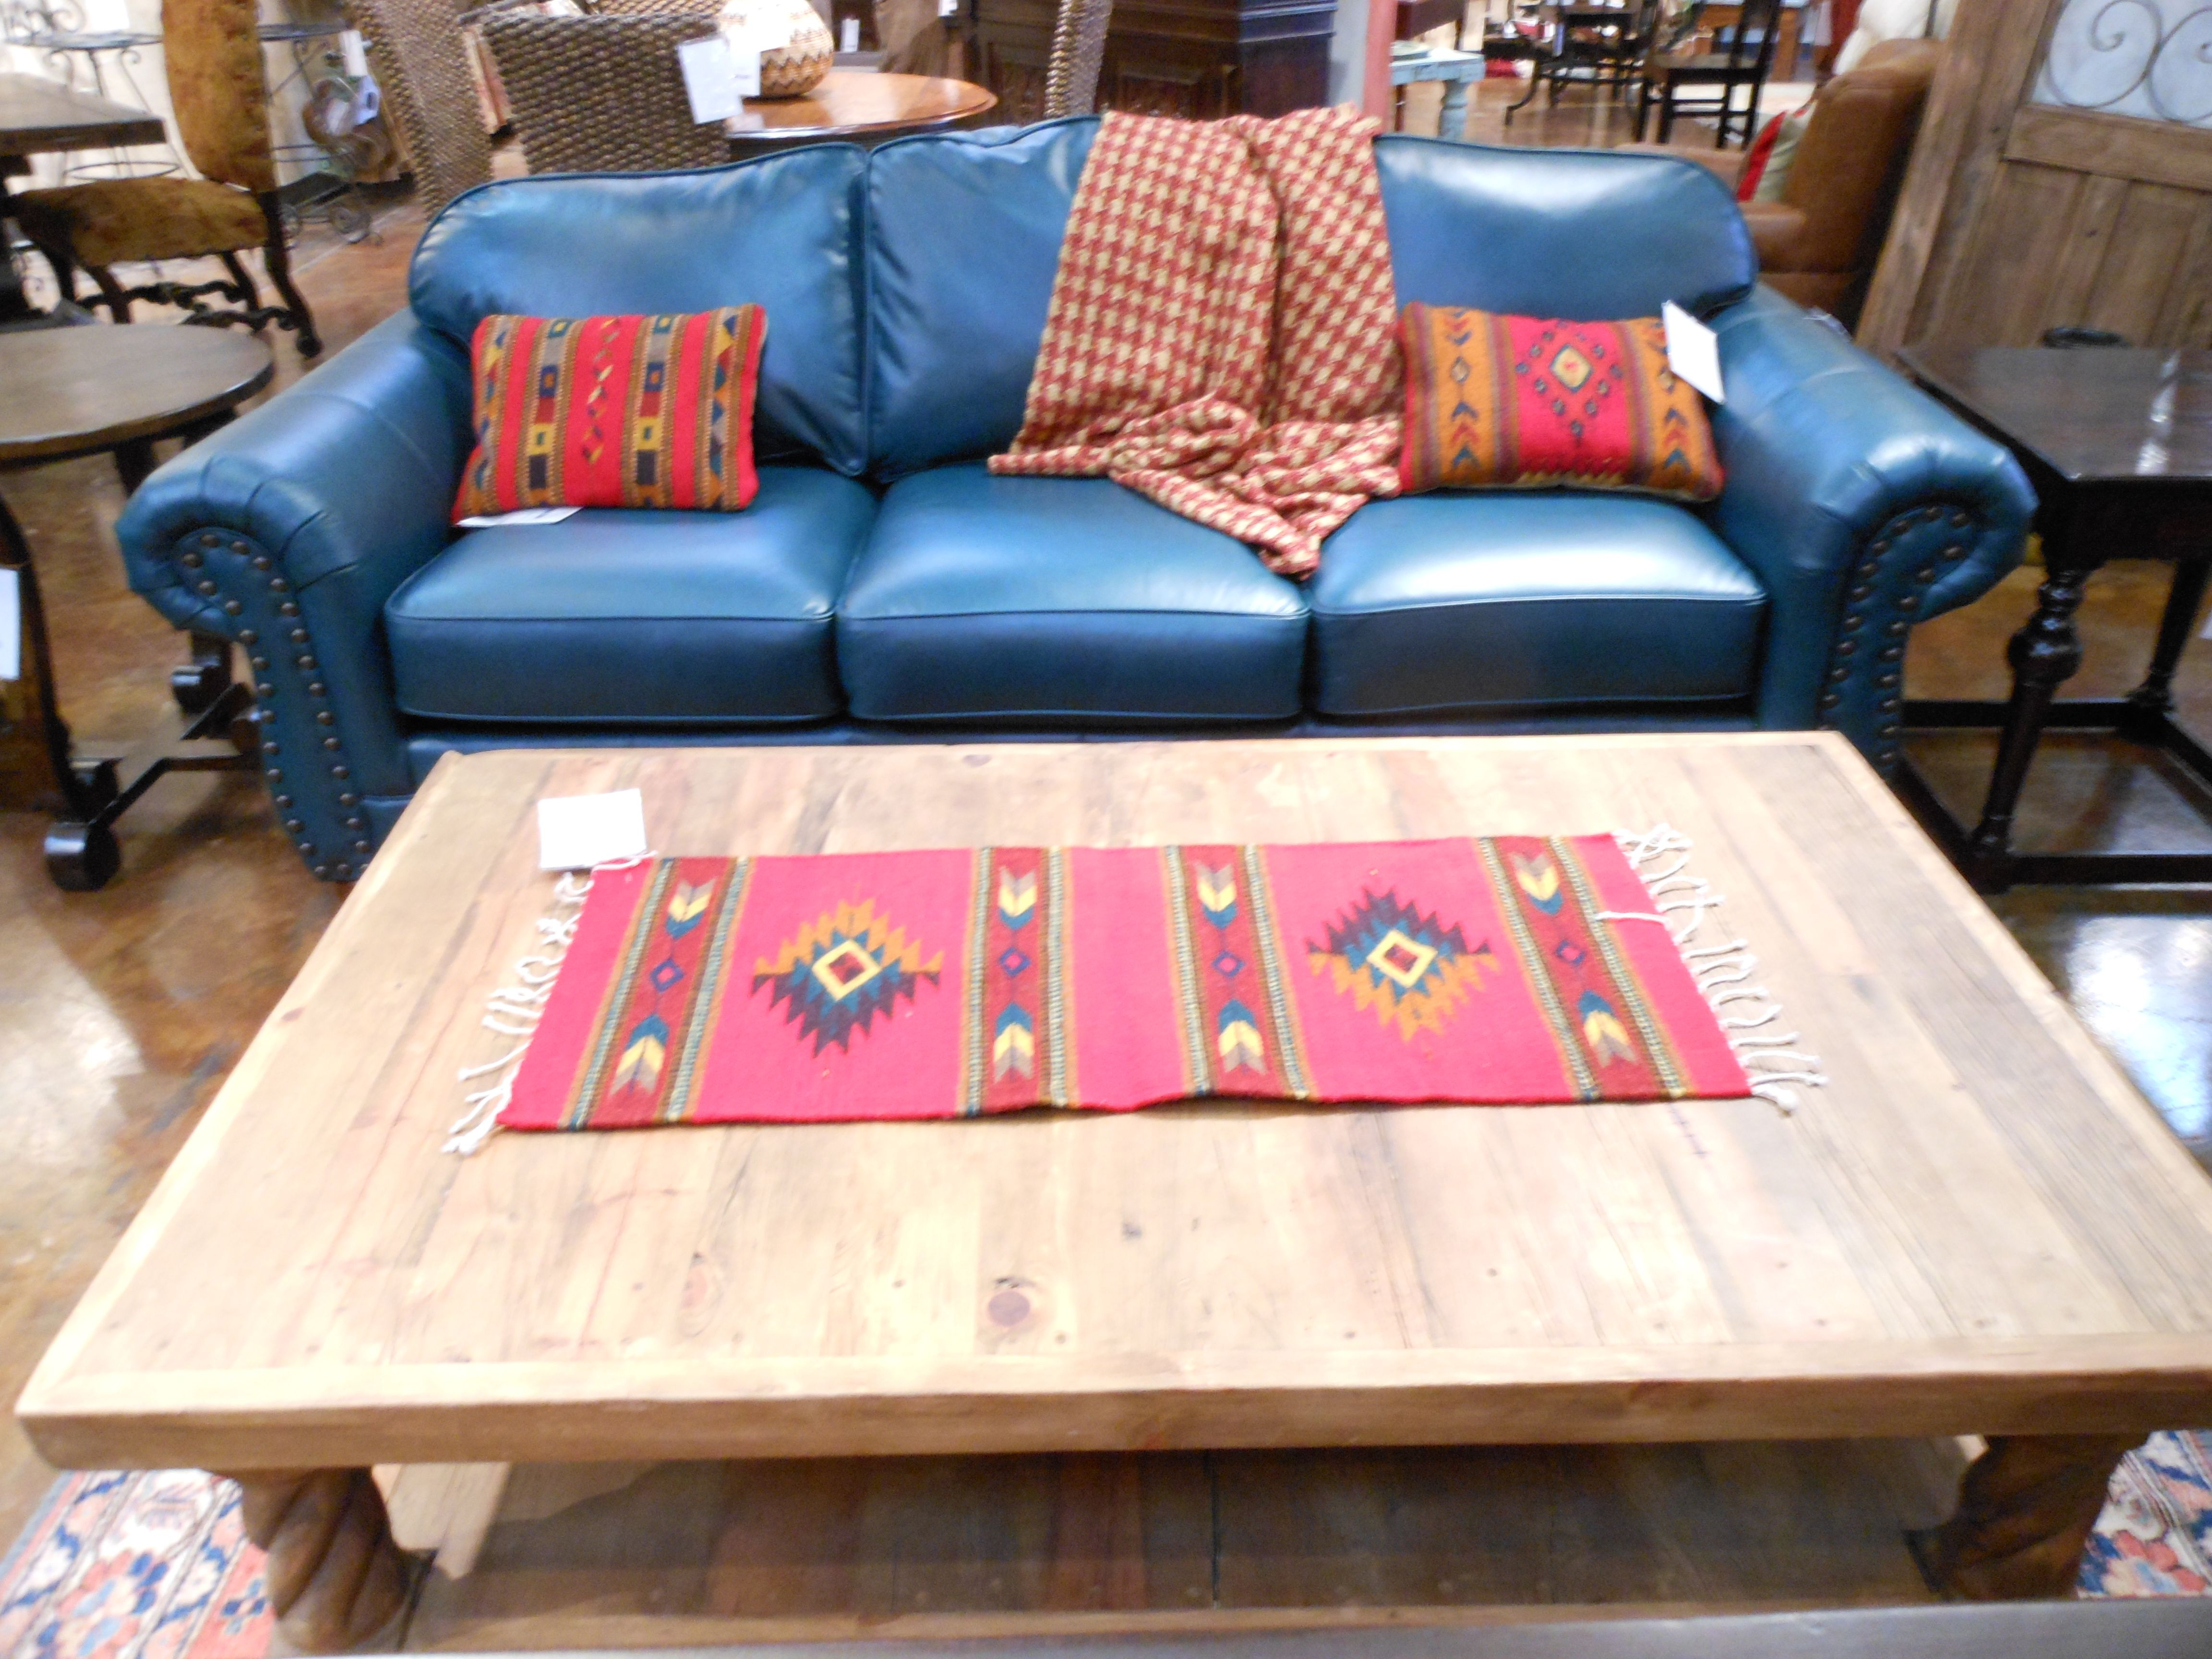 New Turquoise Leather Sofa From Mayo Furniture Of Texarkana Texas With A  Table Hand Made By